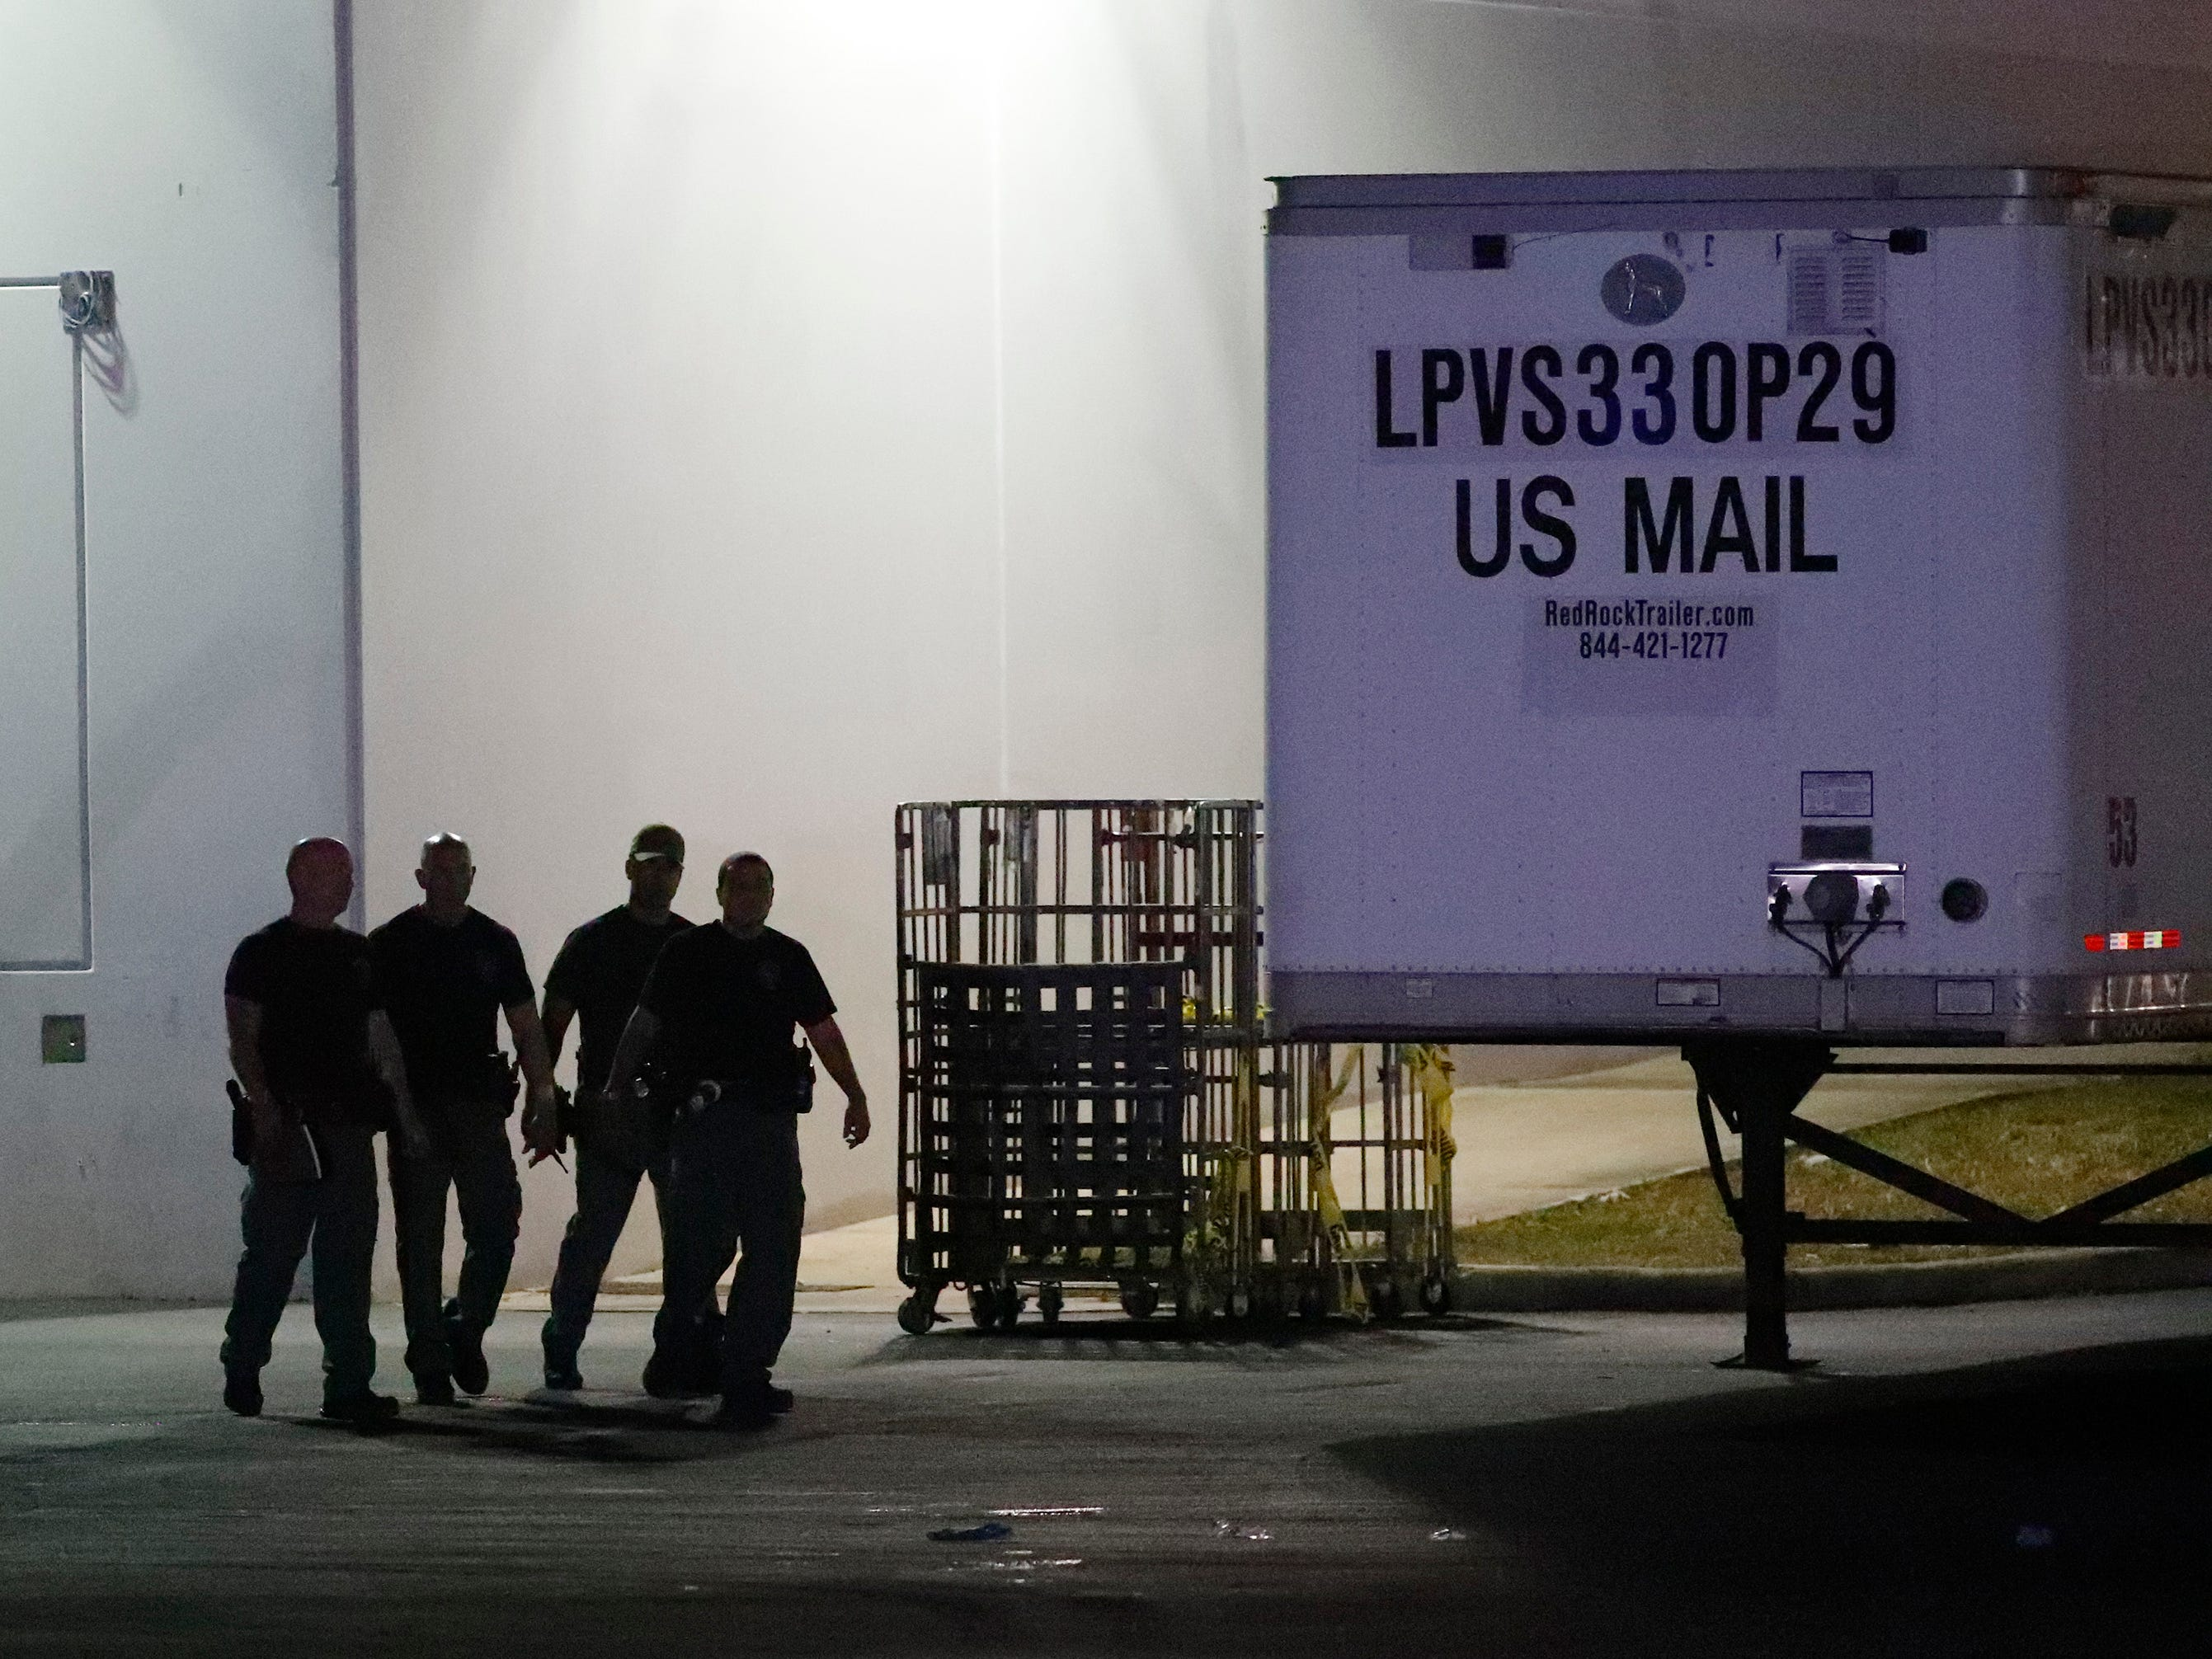 Members of the Miami-Dade County Bomb Squad walk outside a postal facility, Oct. 25, 2018, in Opa-locka, Fla. Investigators searched coast-to-coast Thursday for the culprit and motives behind the bizarre mail-bomb plot aimed at critics of the president.